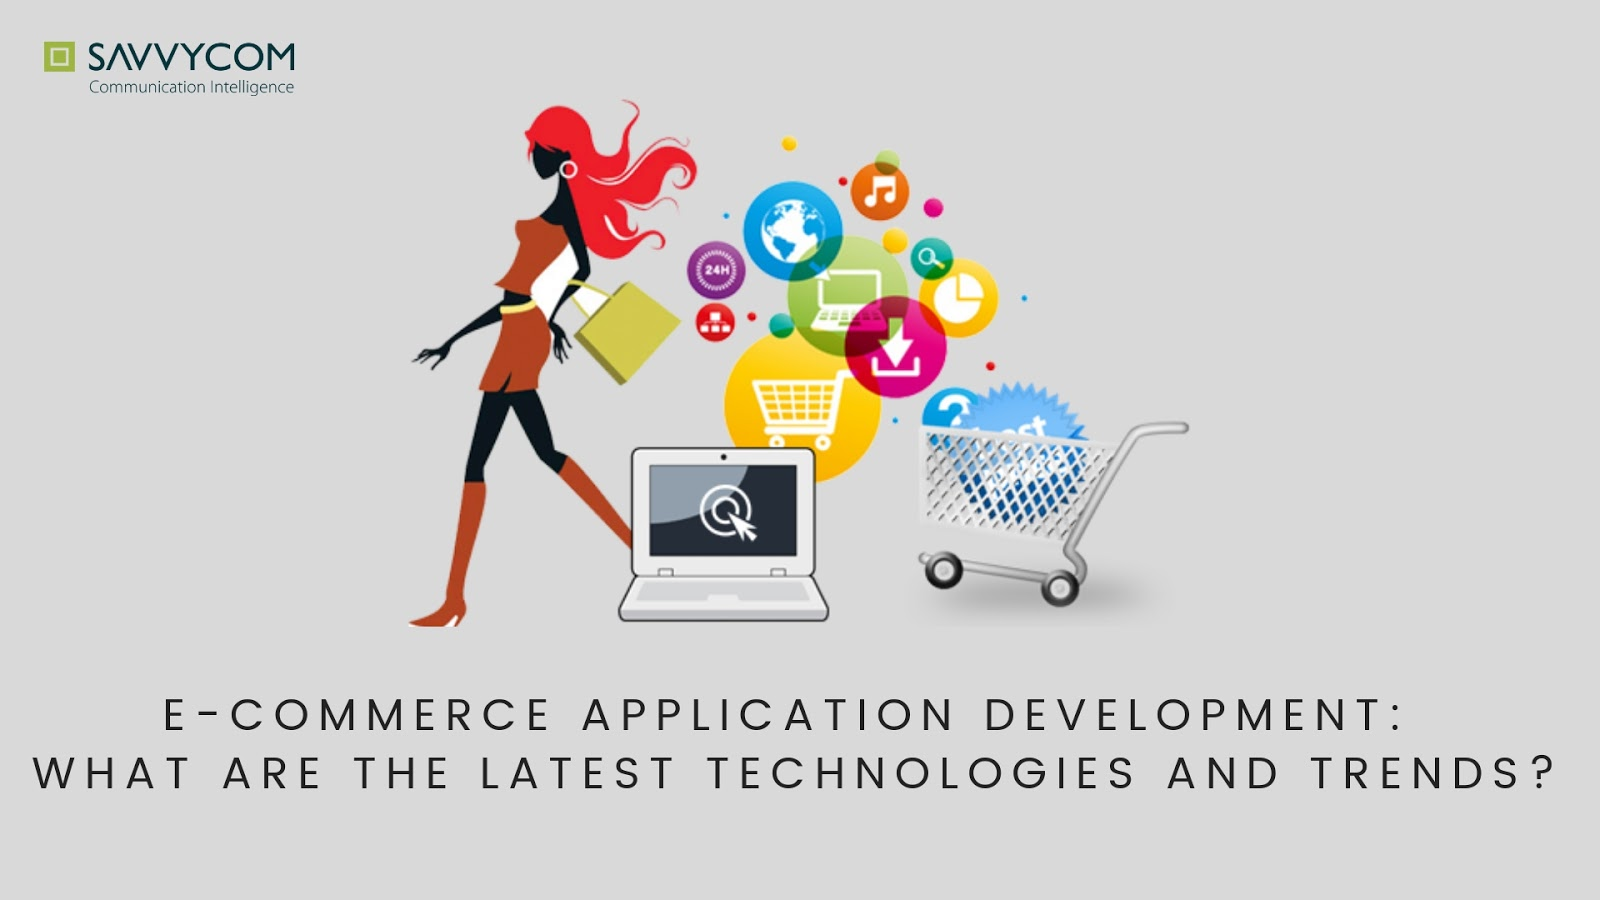 ecommerce application develoment, ecommerce apps, e-commerce apps, savvycom